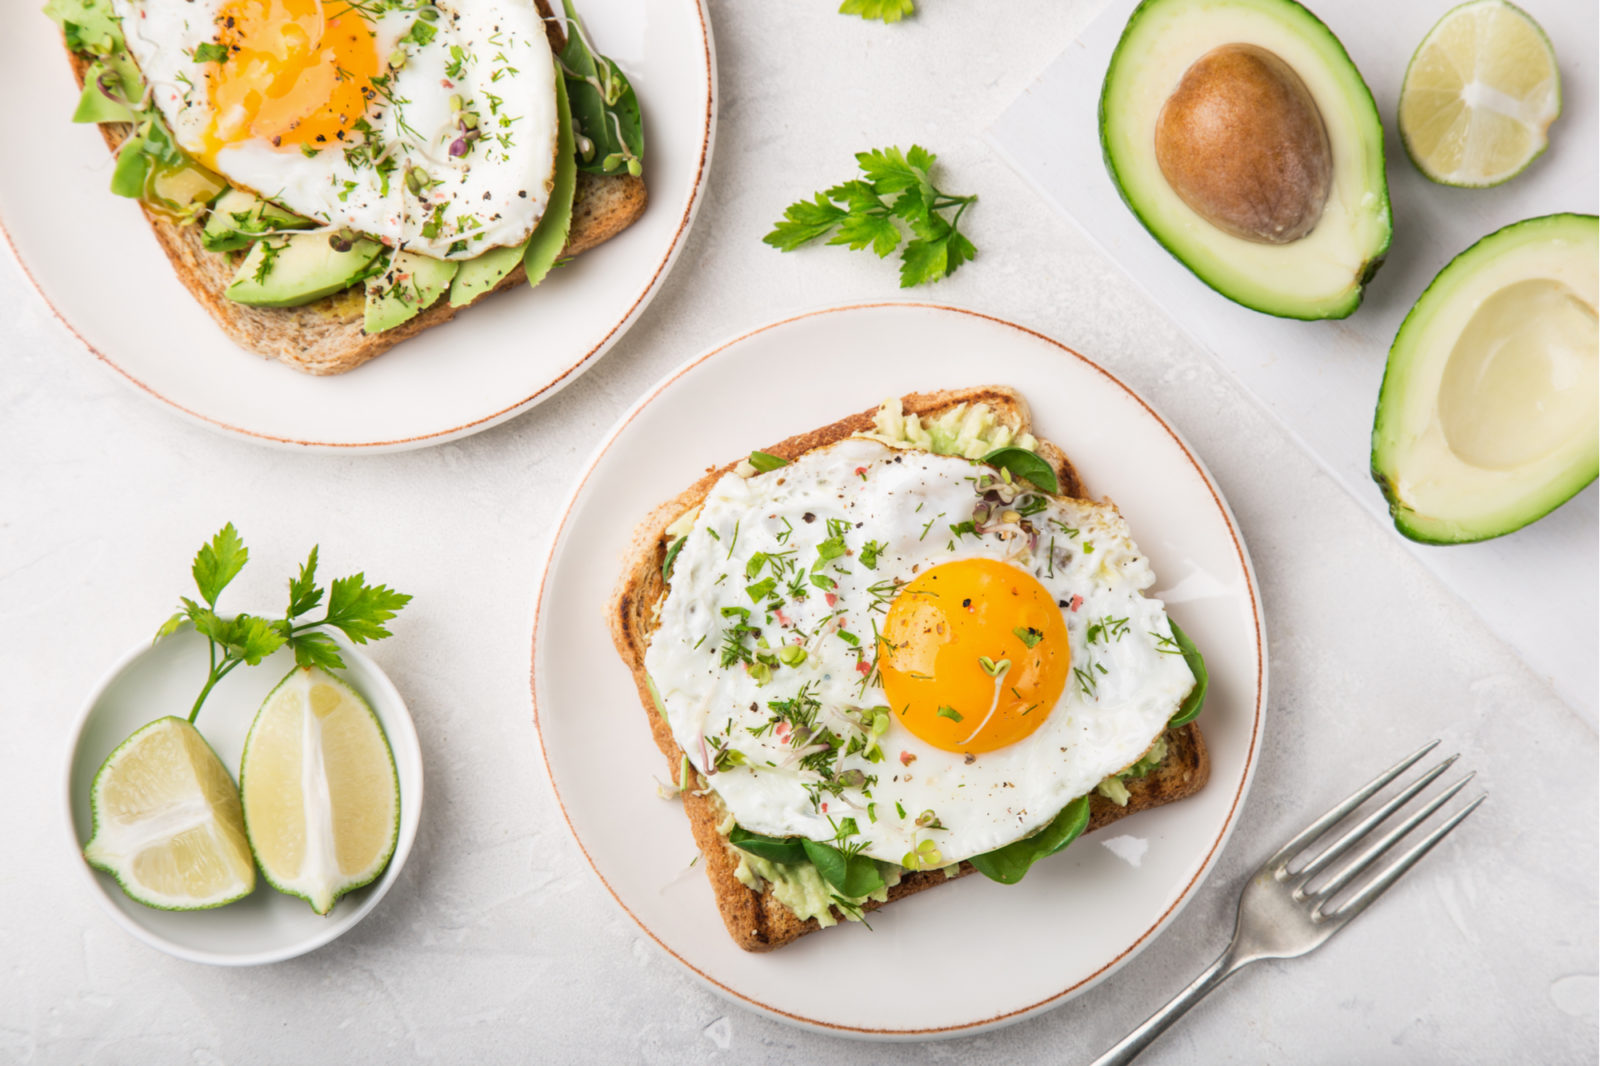 Fried Egg Avocado Sandwich